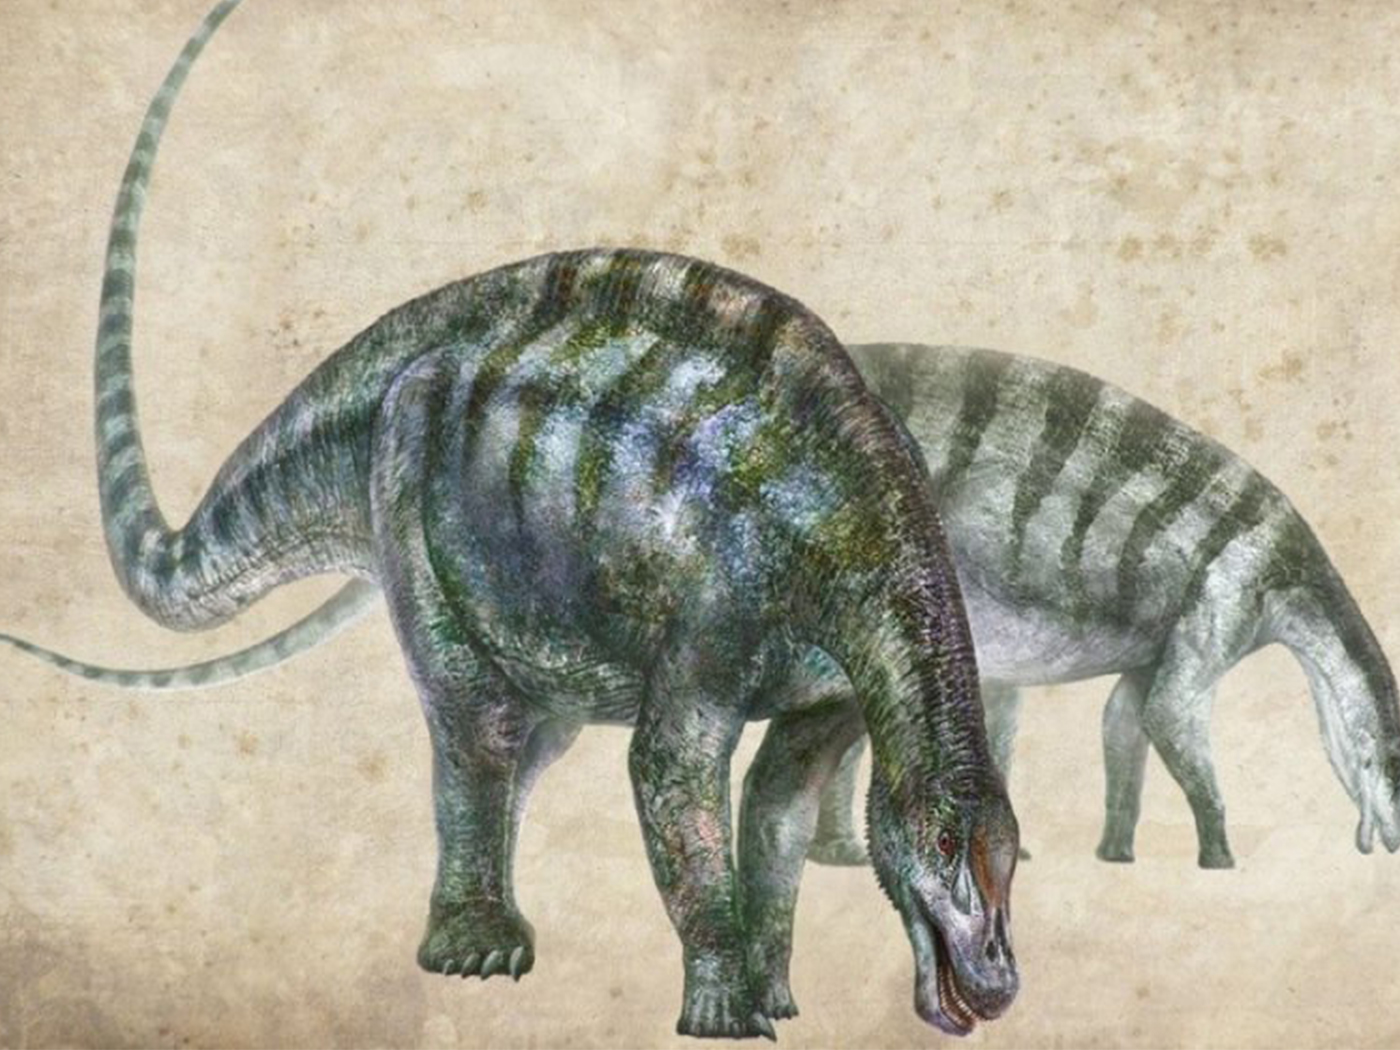 Diplodocoid Dinosaurs Found in Unexpected Place